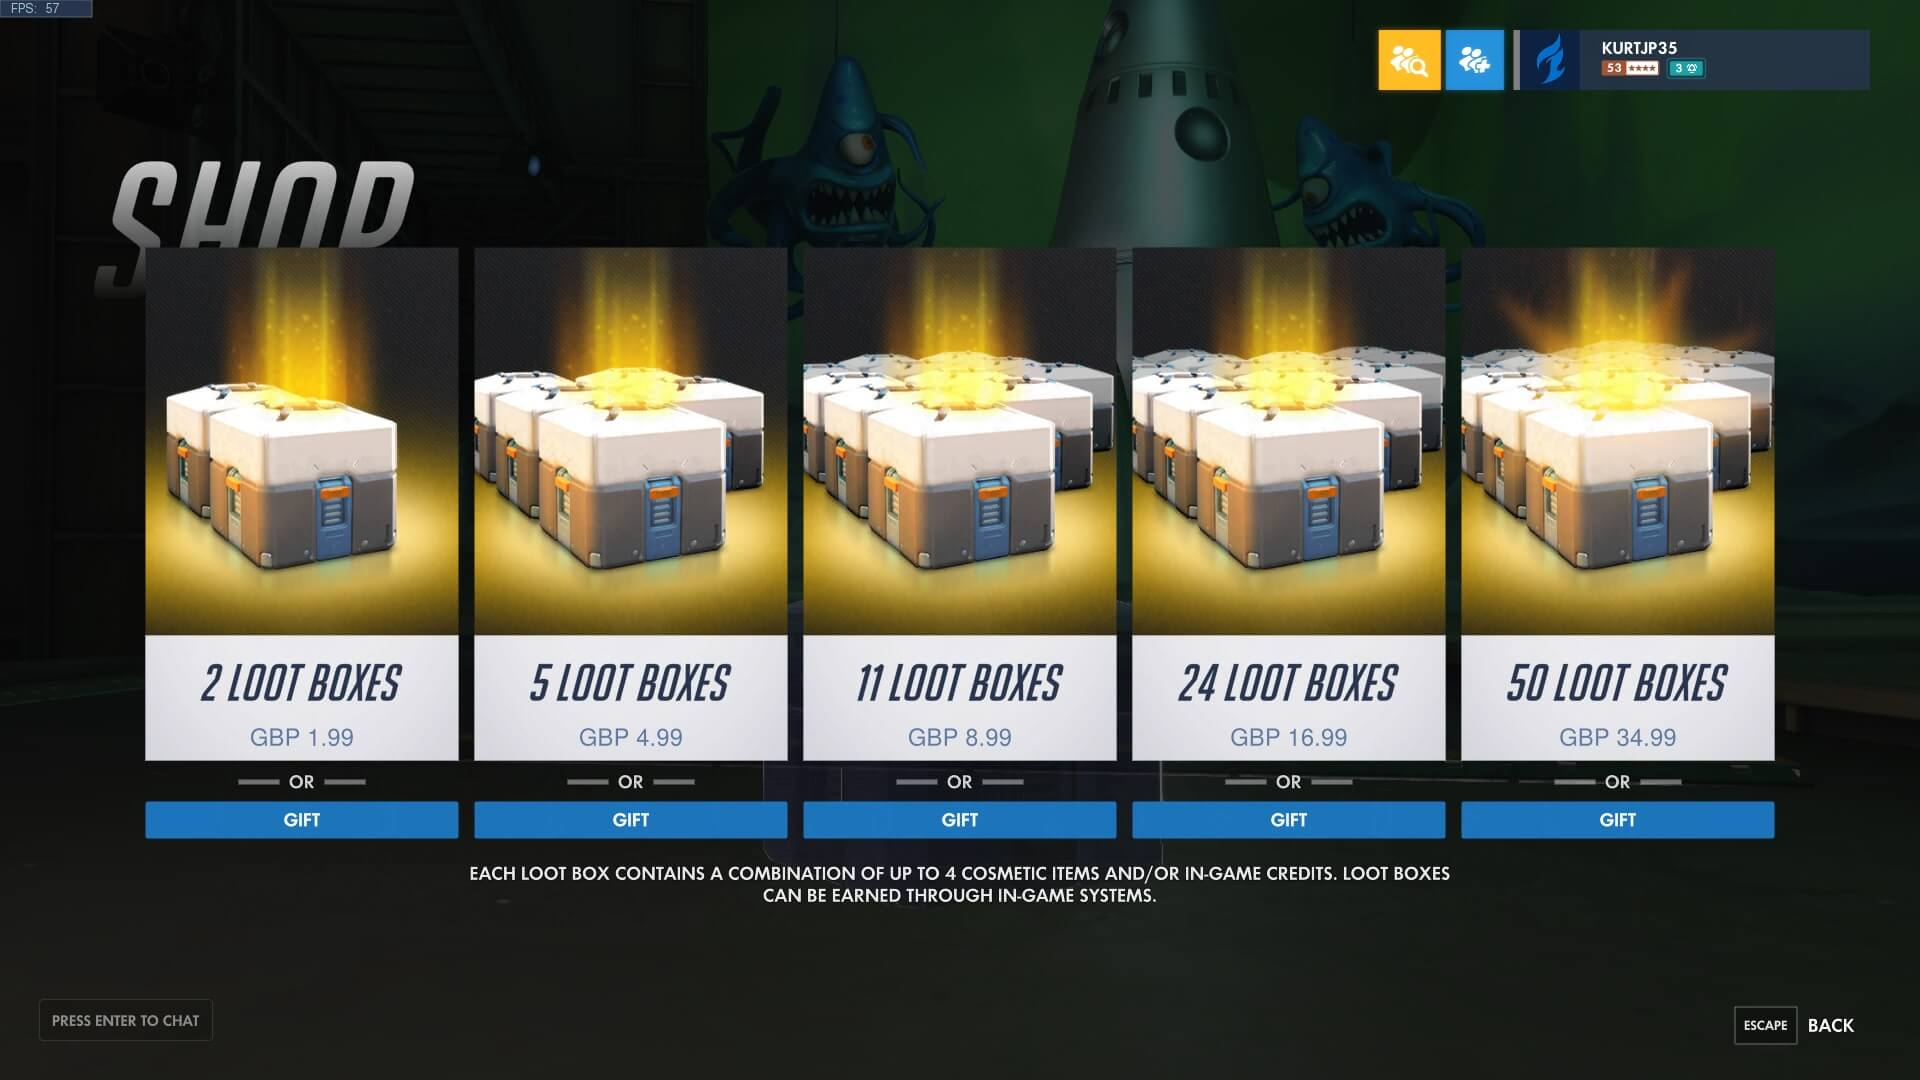 Loot Boxes In Video Games To Be Investigated By The U.S Federal Trade Committee